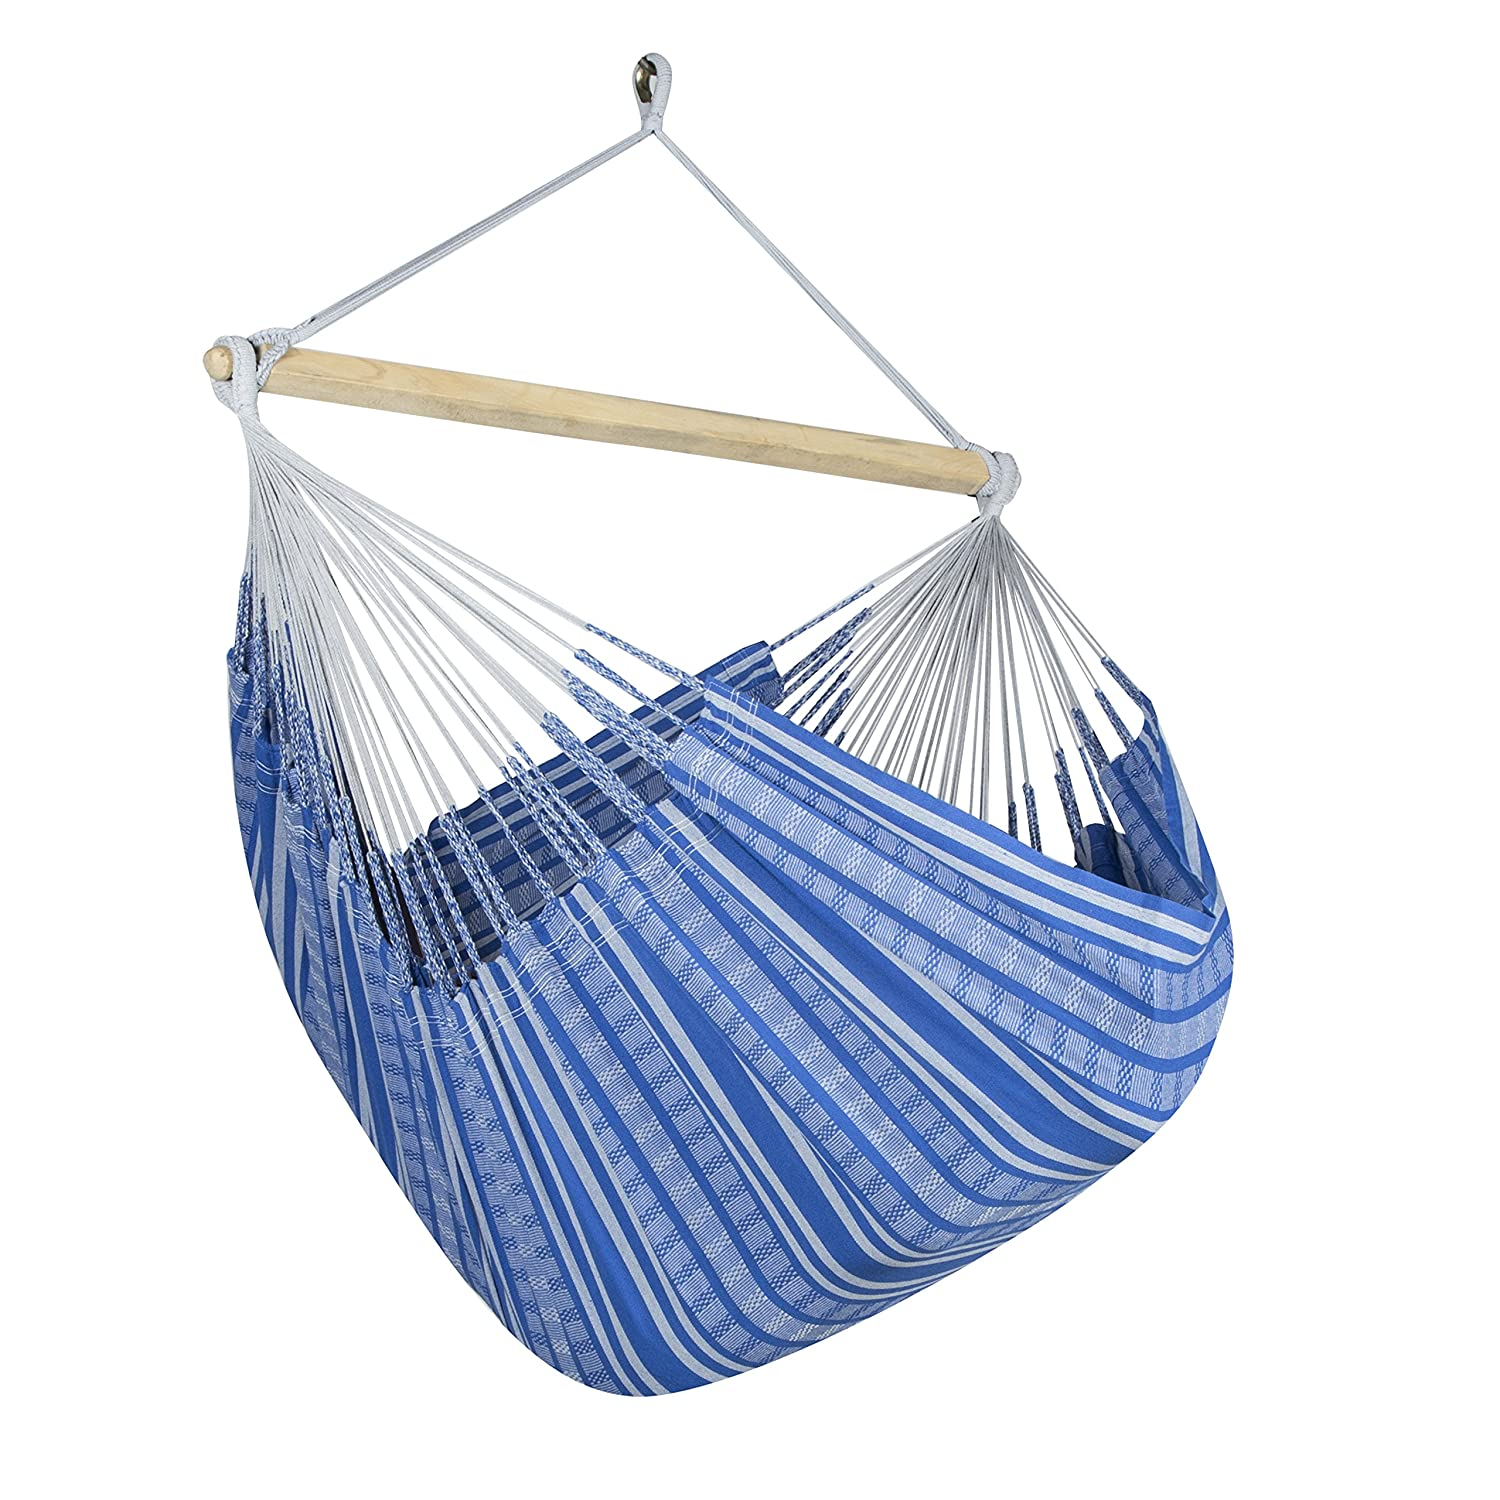 dropbear in amazing guidebook hammock colombia hammocks you theguidebook the stay colombian to hostel have at hostels